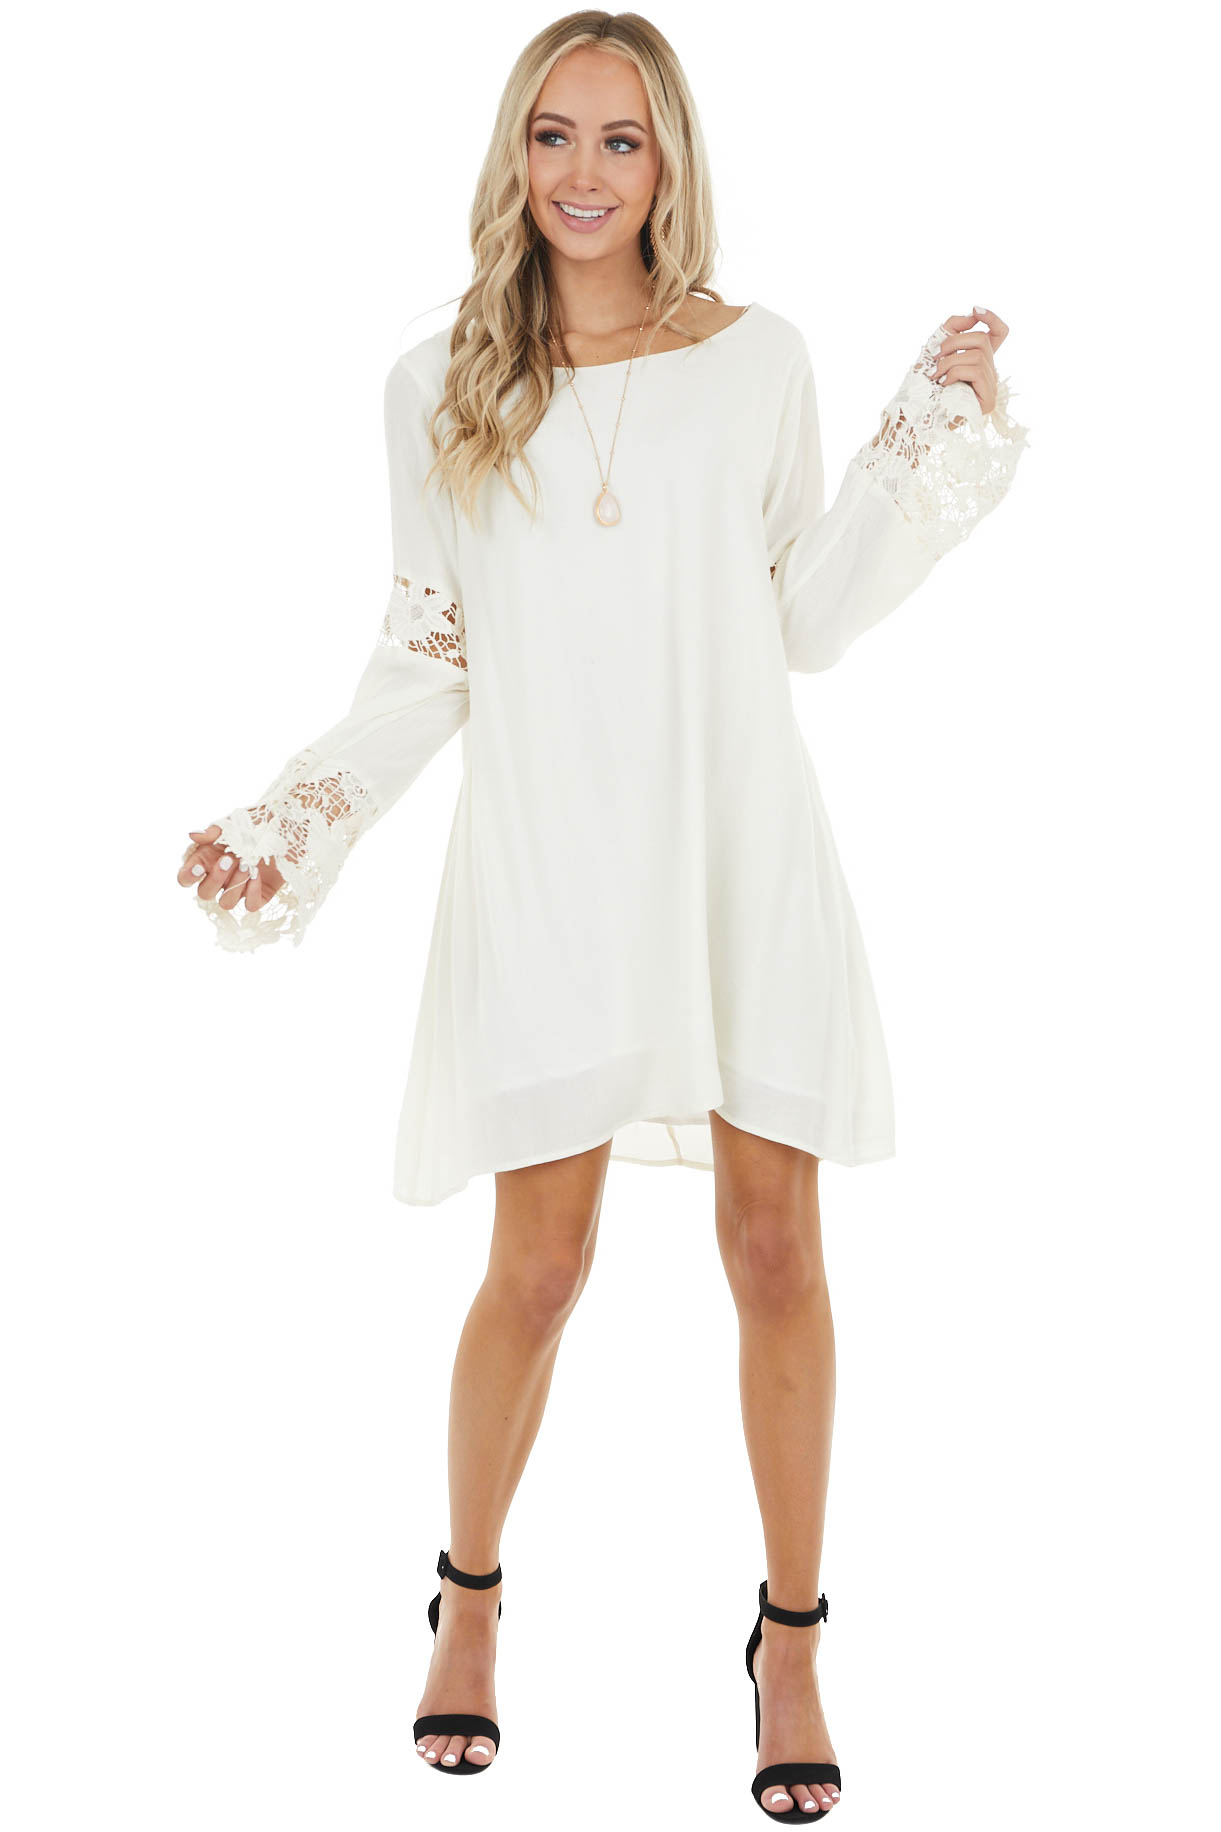 Ivory Short Shift Dress with Long Crochet Lace Bell Sleeves